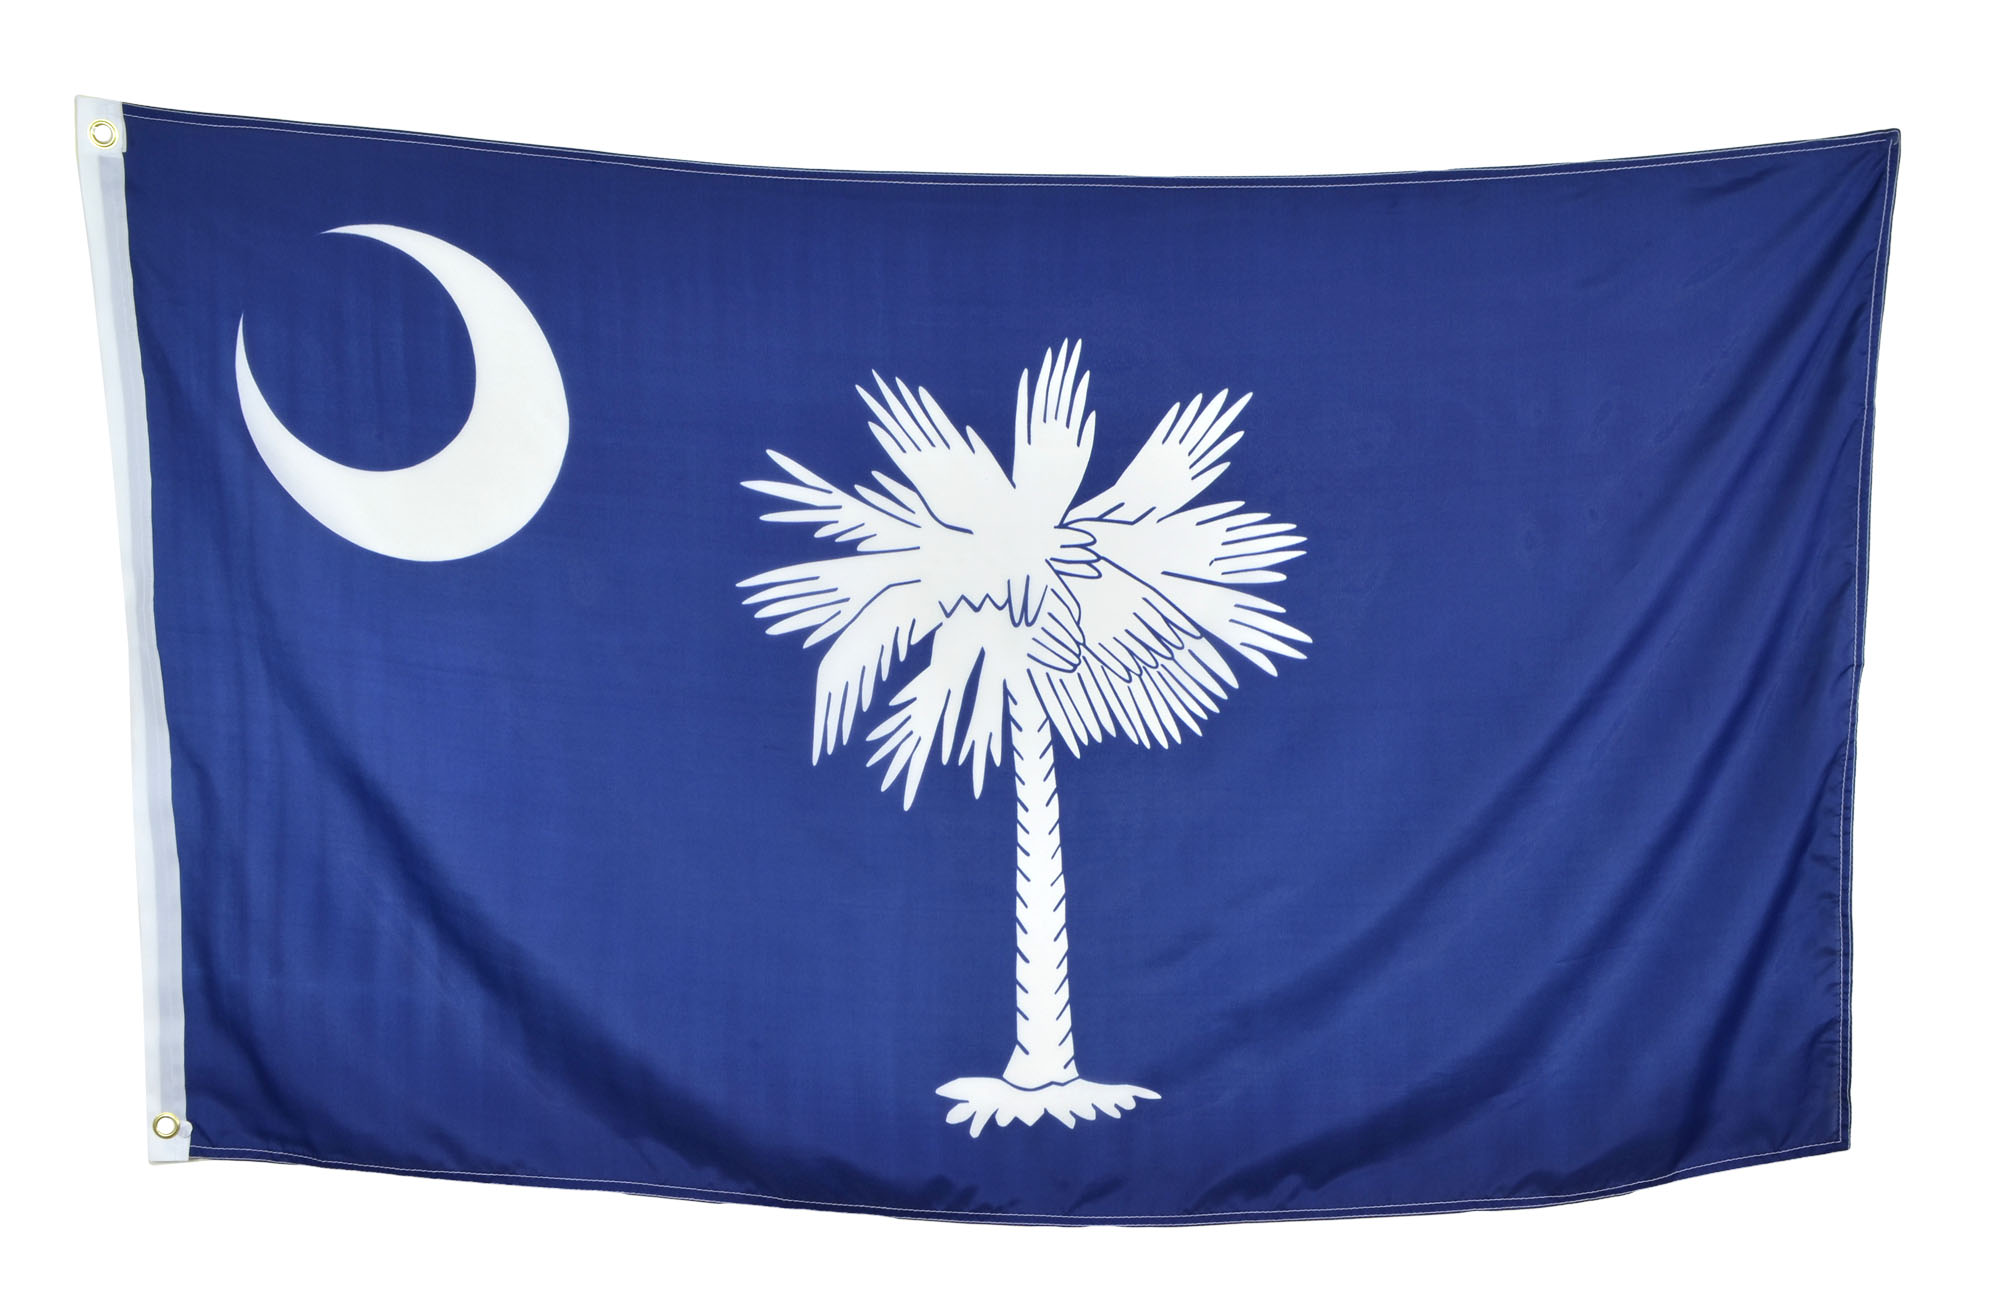 Shop72 US South Carolina State Flags - South Carolina Flag - 3x5' Flag from Sturdy 100D Polyester - Canvas Header Brass Grommets Double Stitched from